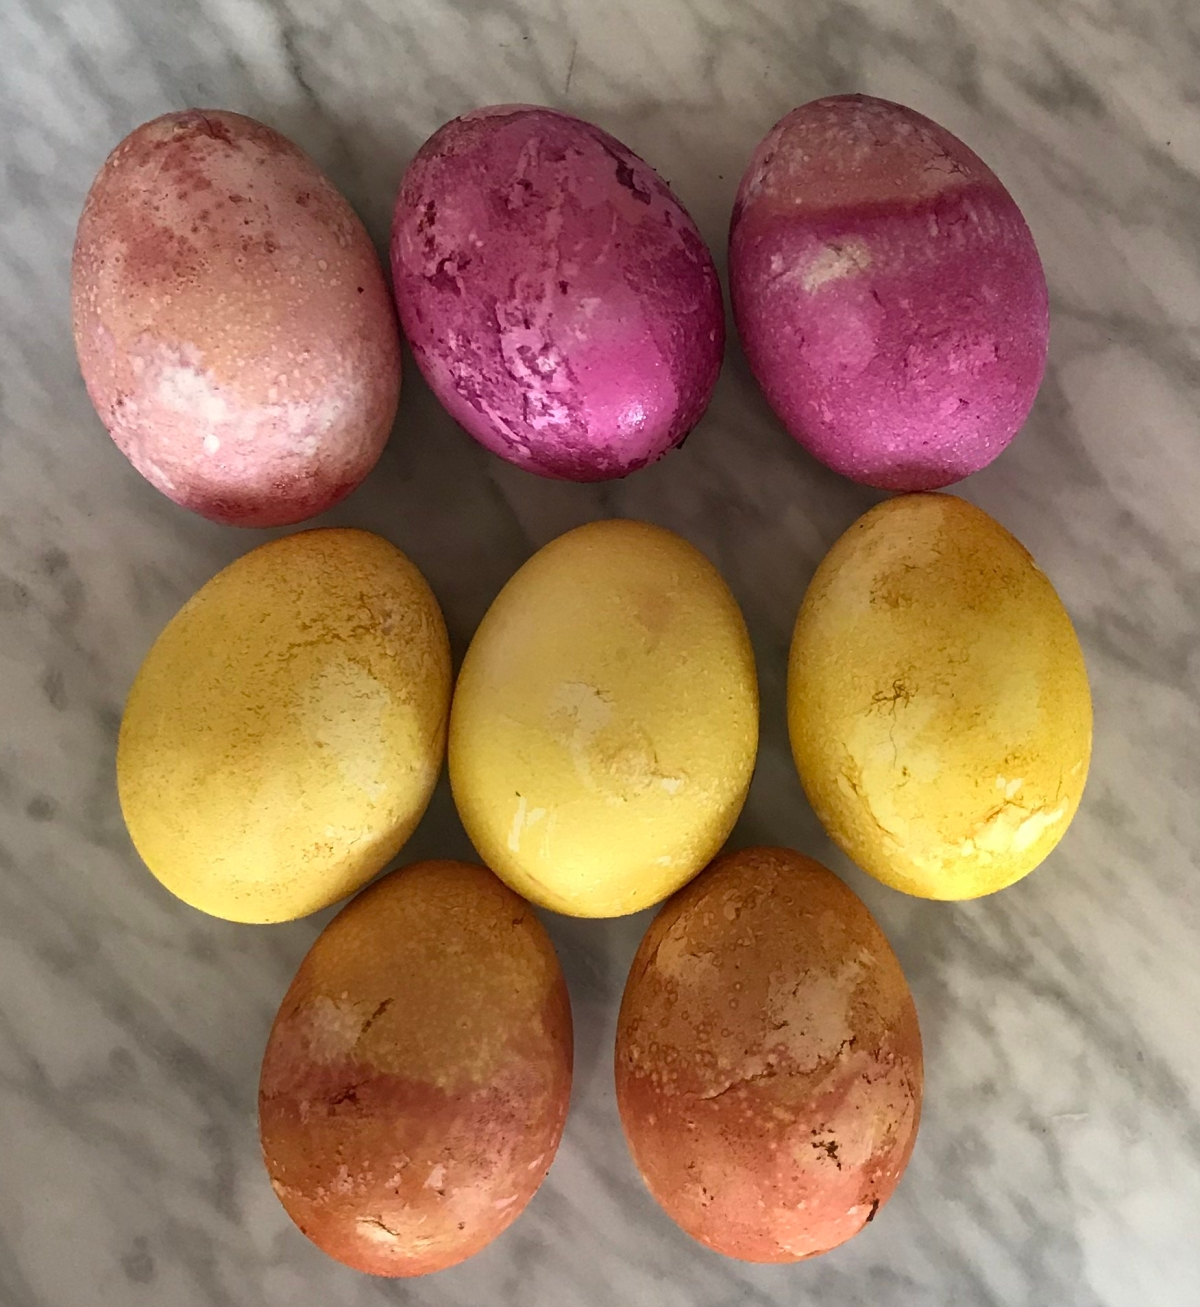 pink (beet dyed), yellow (turmeric dyed) and orange (mixed bath) eggs